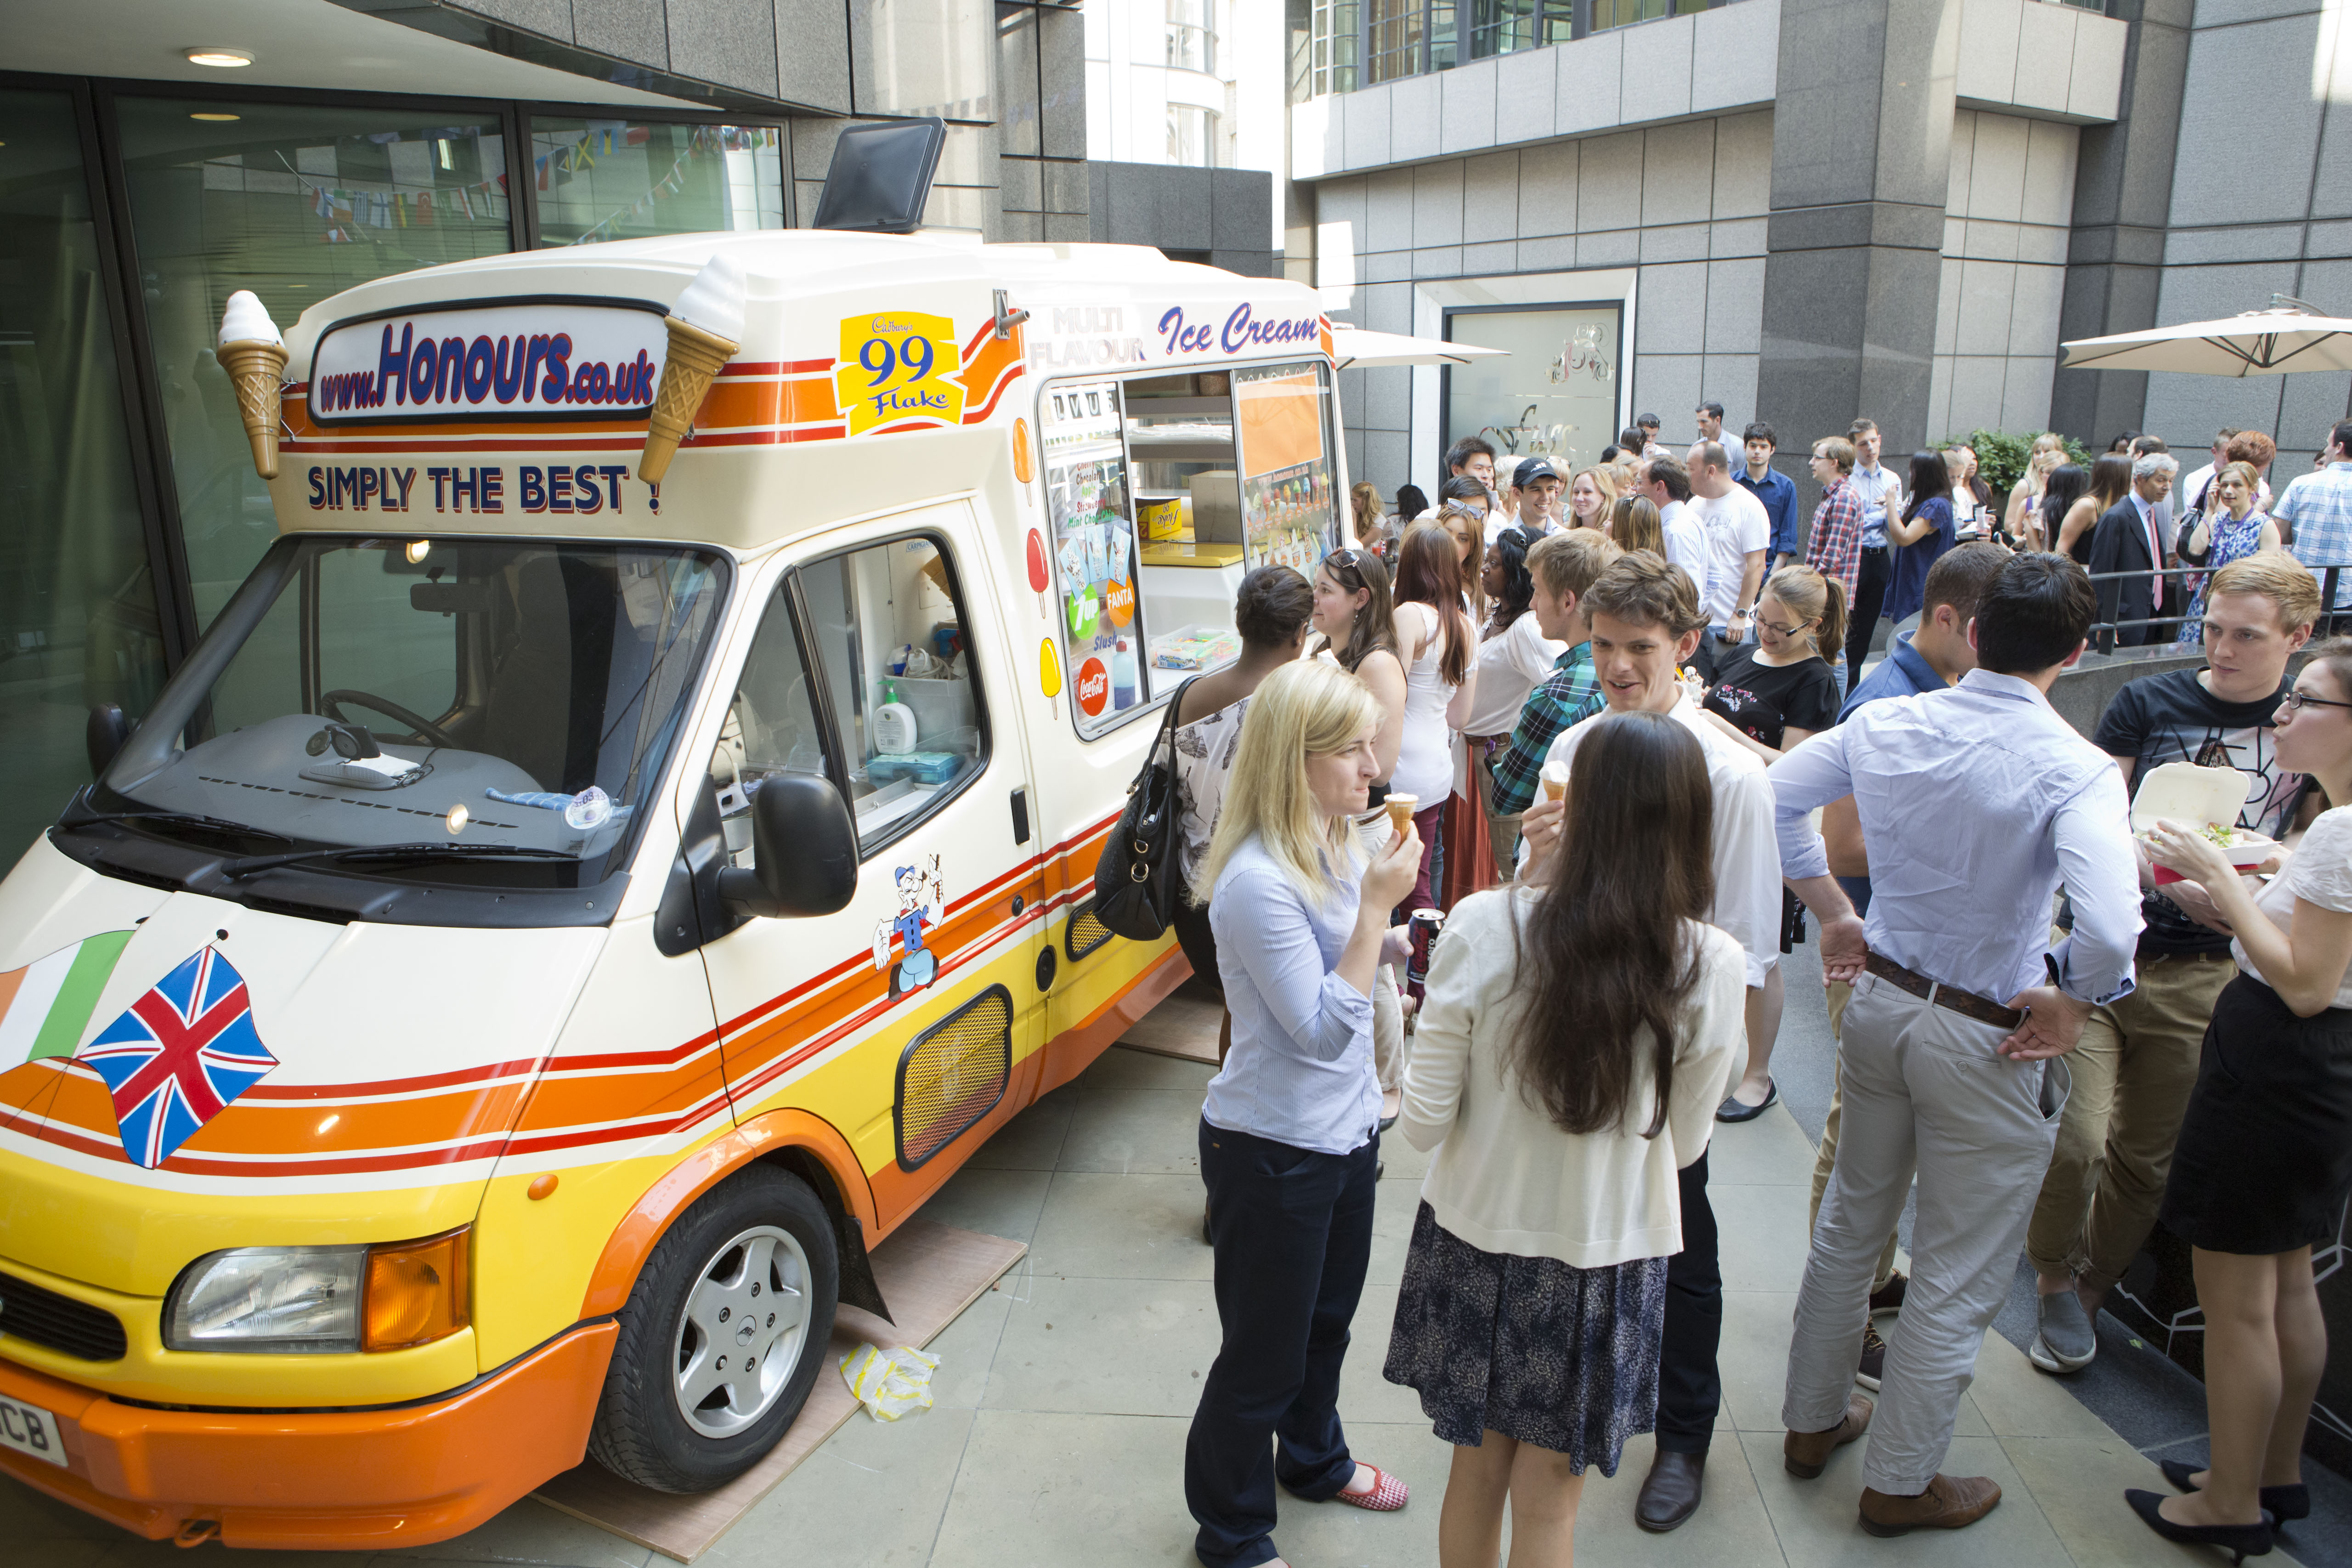 Promotional ice cream van for hire